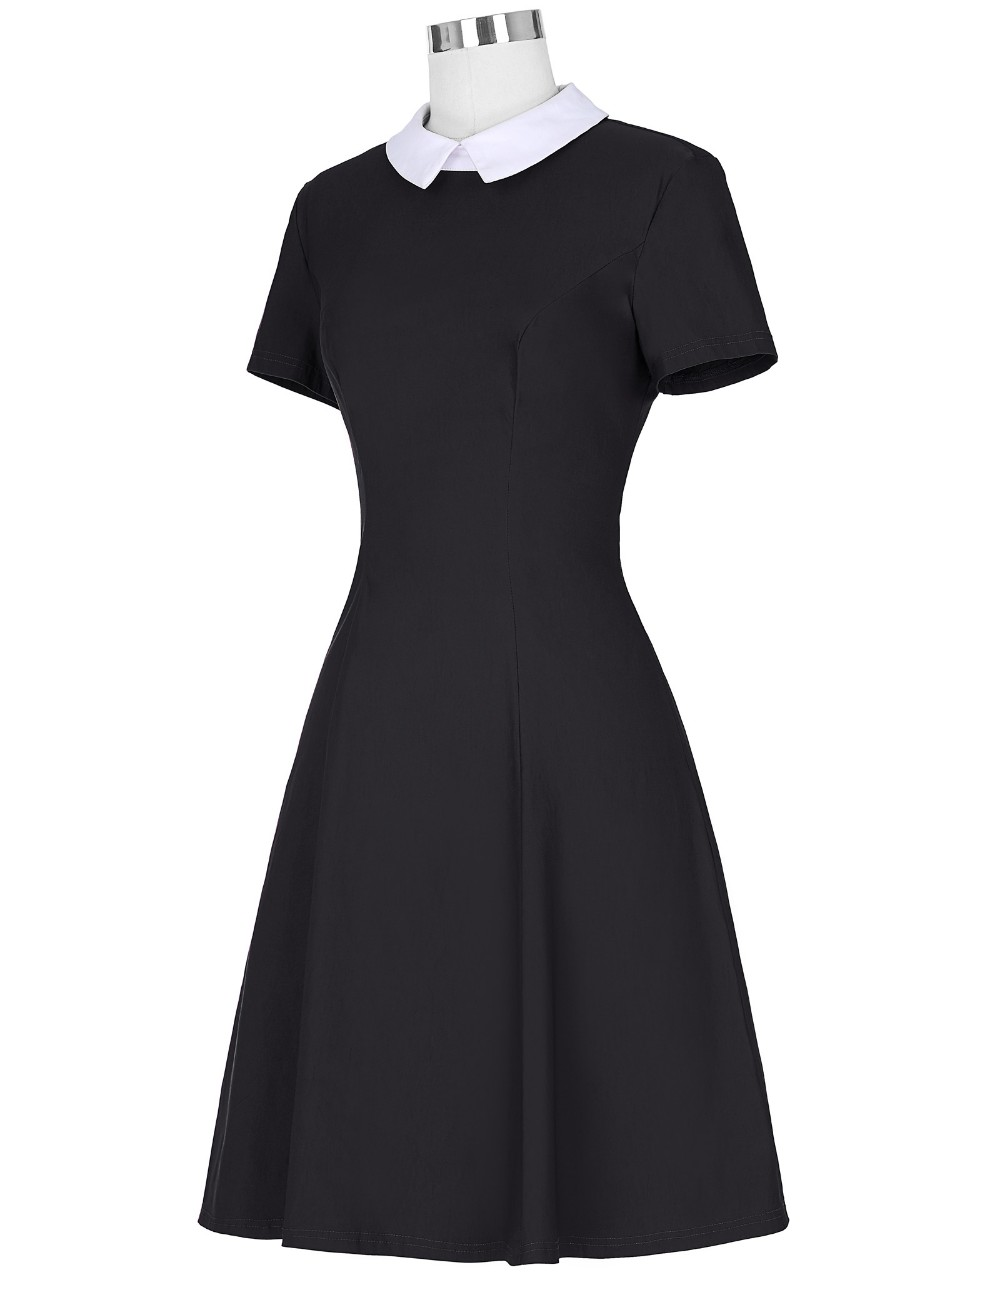 Kate Kasin Retro Vintage Short Sleeve Doll Collar High Stretchy Party Picnic Black Dress KK000388-1